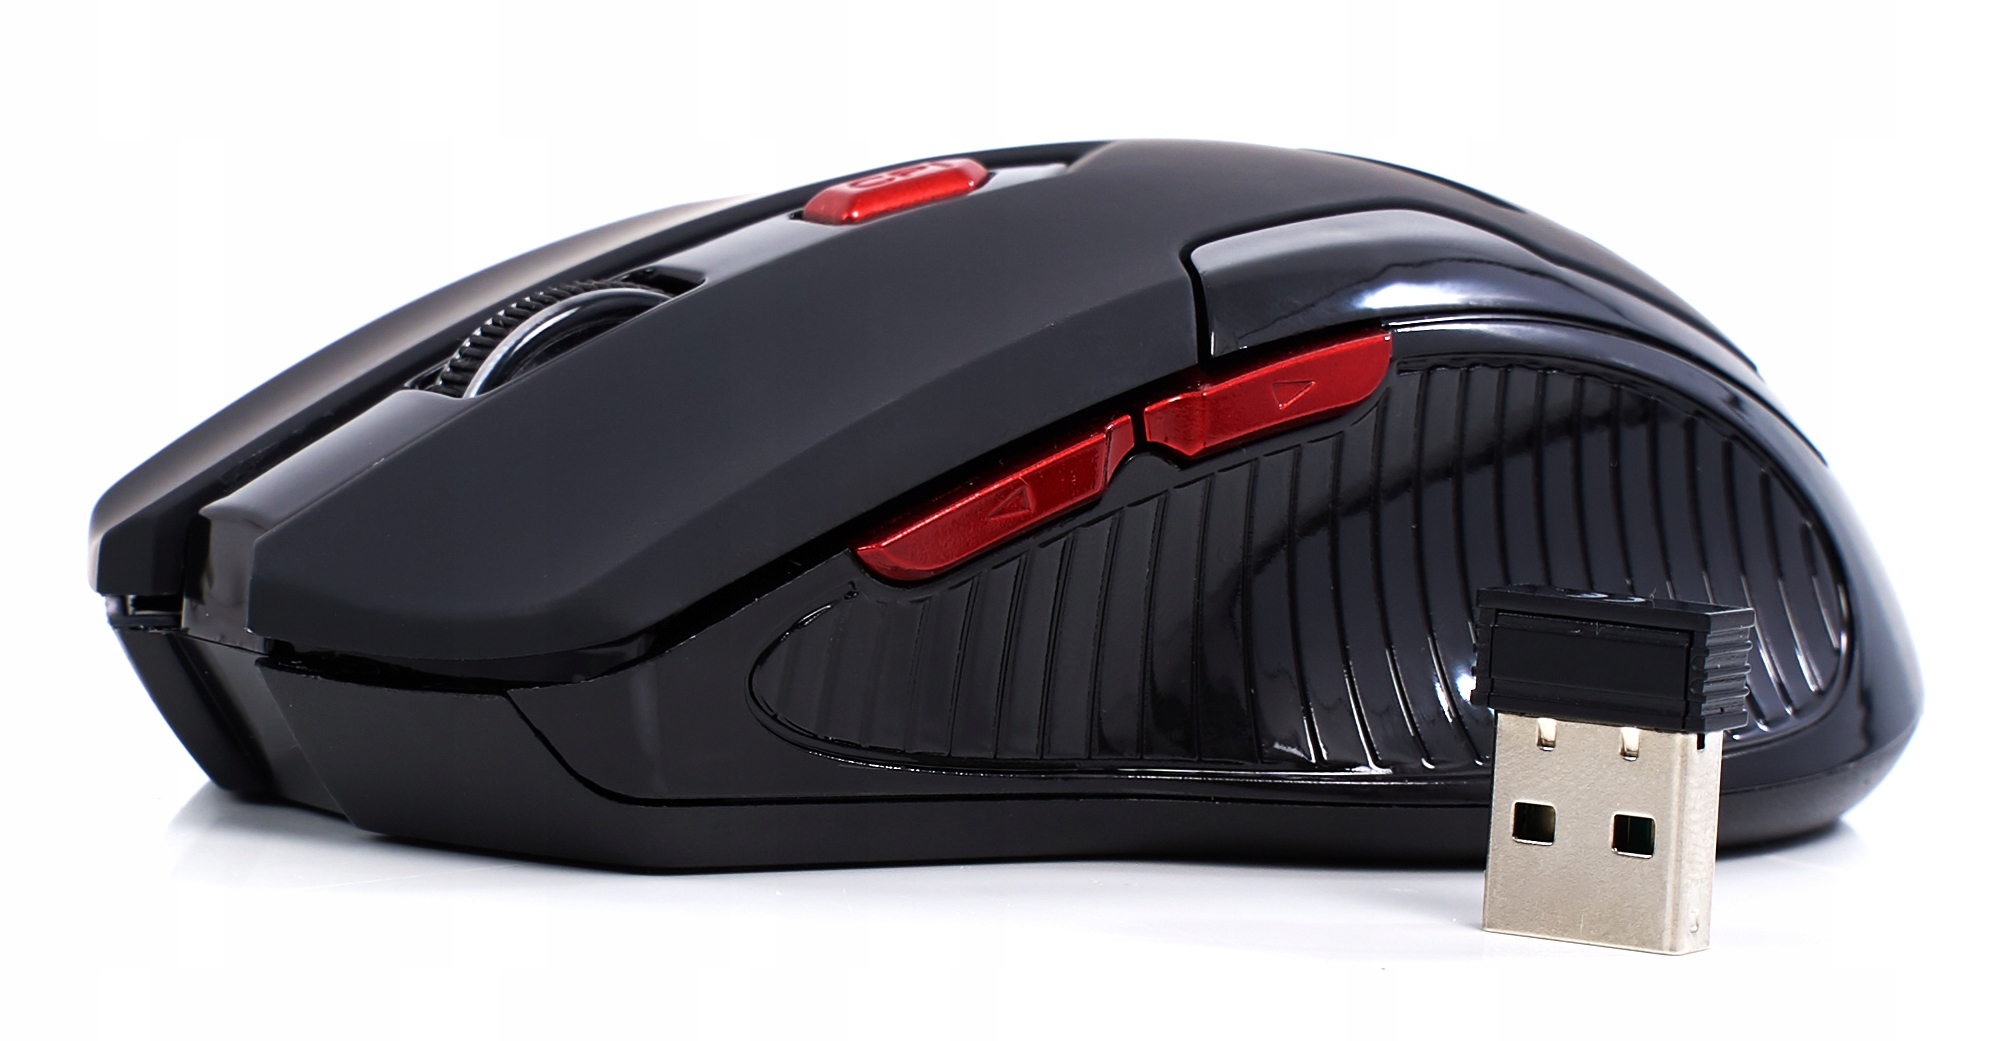 Item WIRELESS GAMING MOUSE GAME USB MOUSE